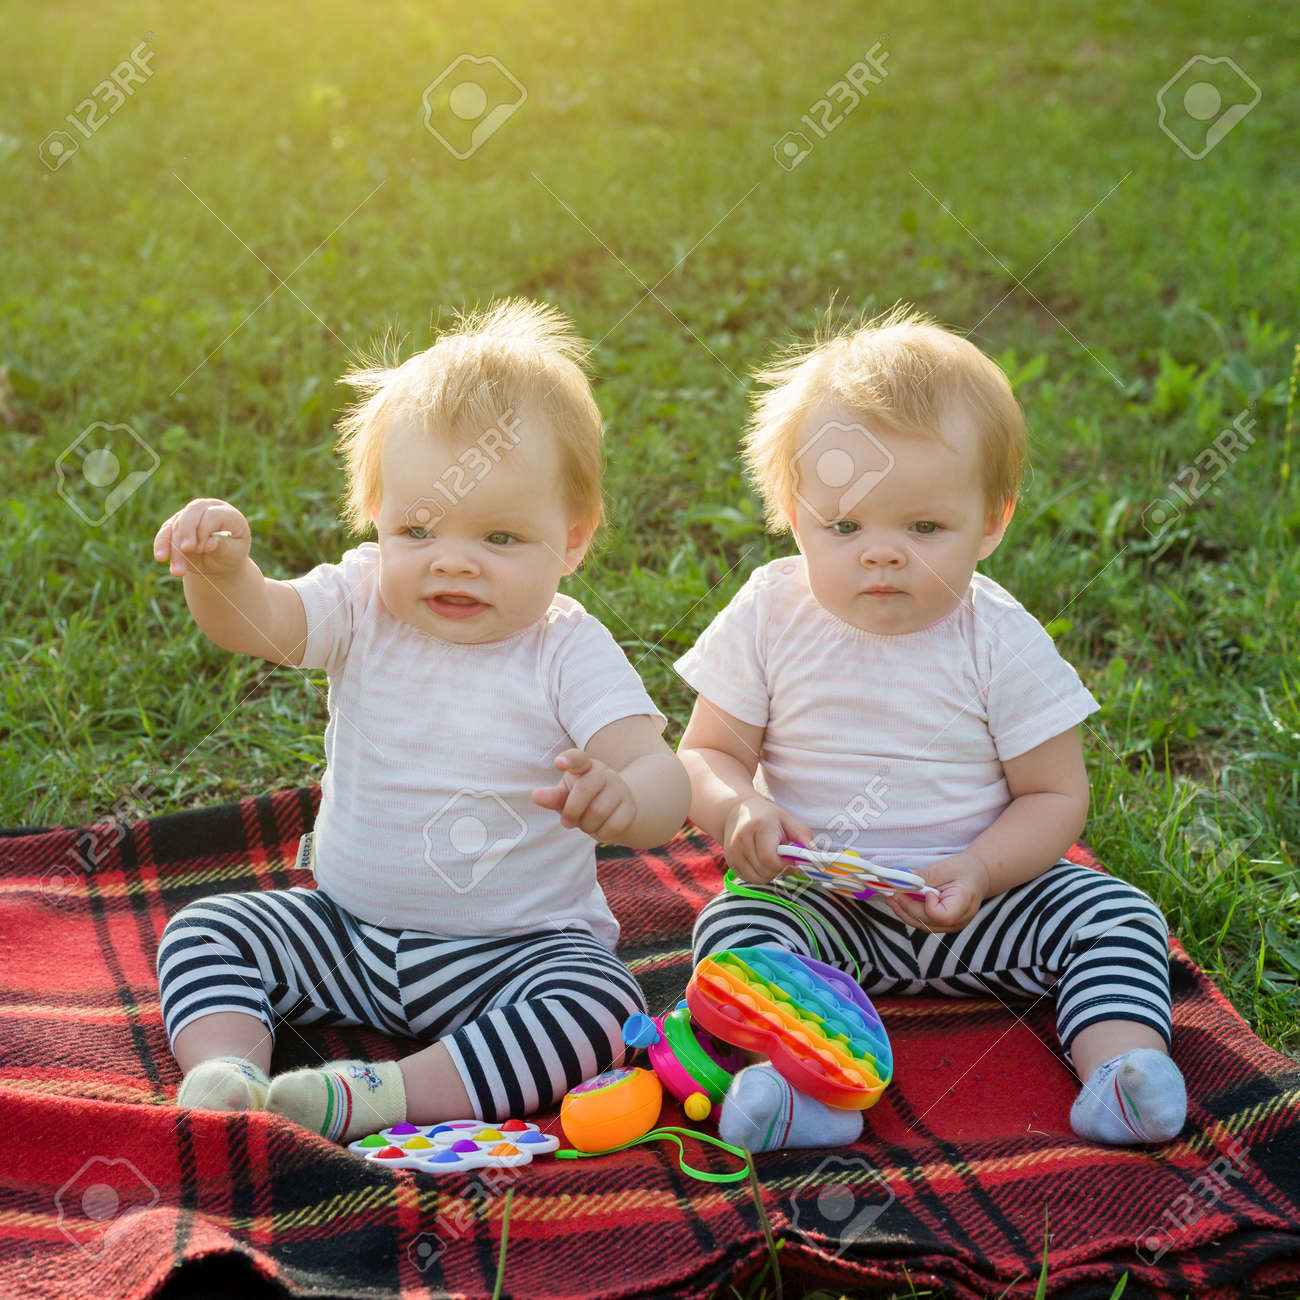 Twin girls play with bright toys on blanket in a city park. - 171582700